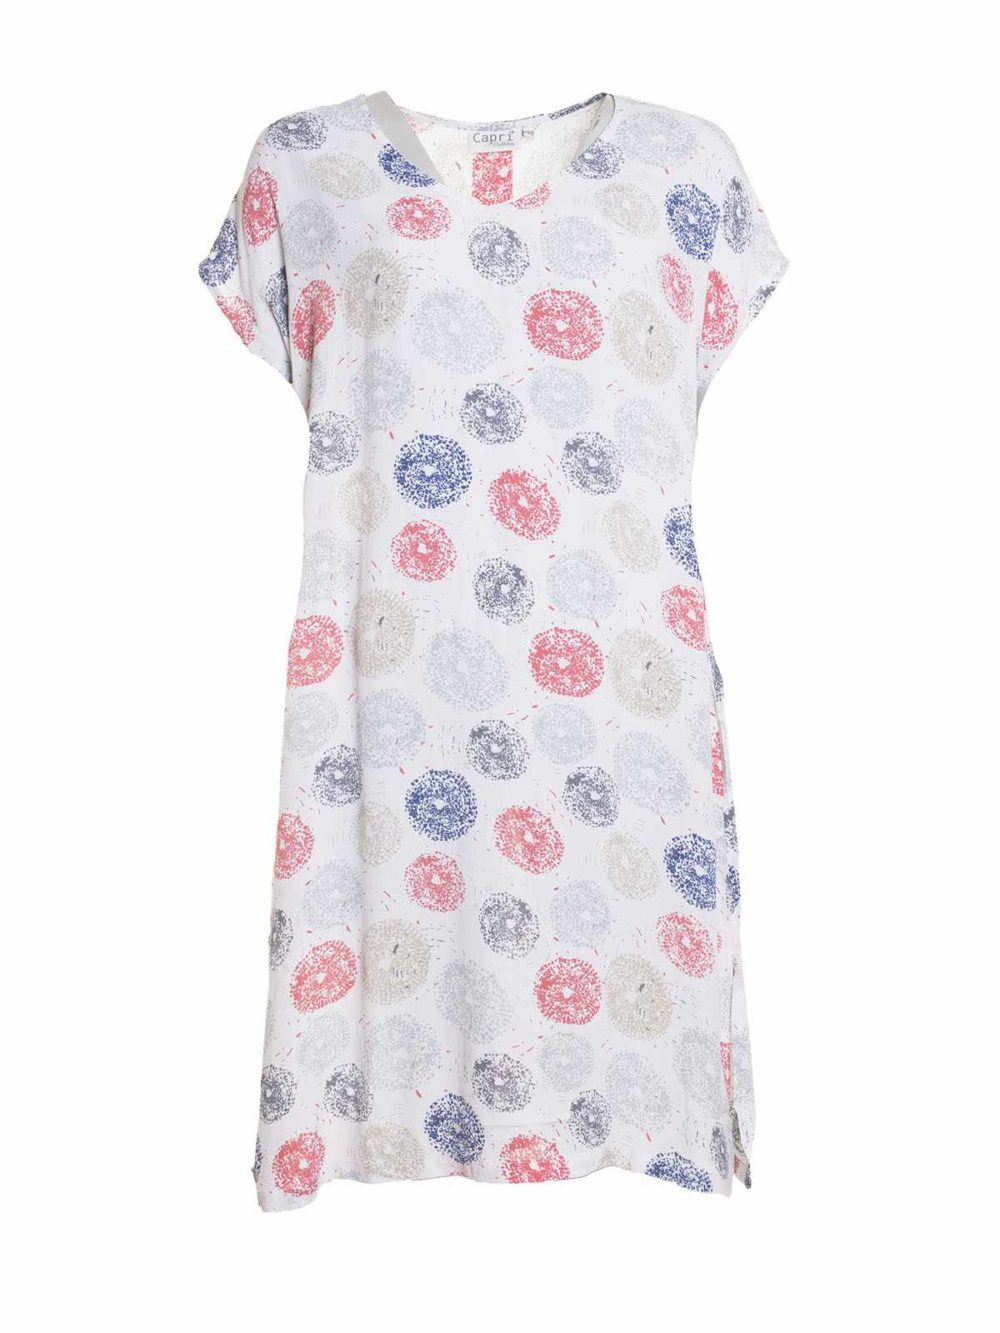 TRN-2420 Dress Capri Clothing Katie Kerr Women's Clothing